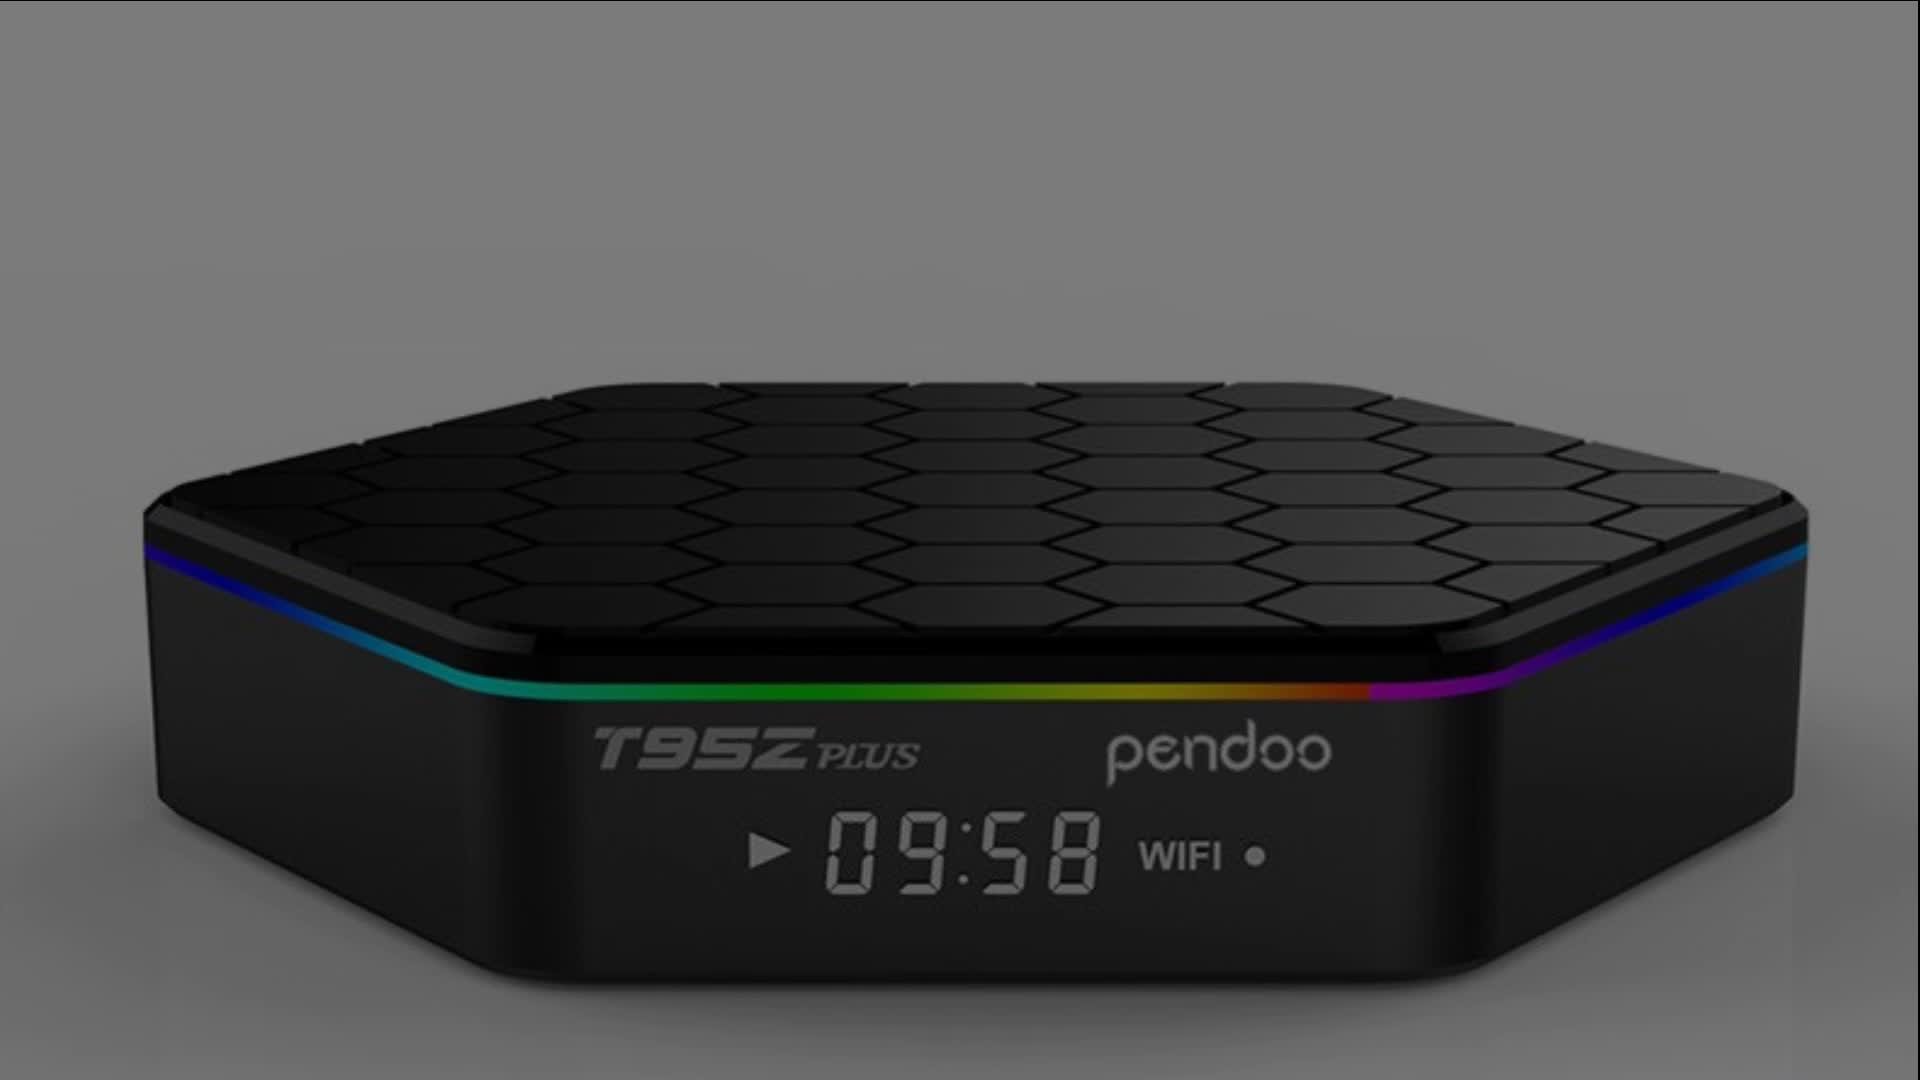 Hot sales Pendoo T95Z Plus S912 2G 16G 8k android tv box made in China Android 6.0 TV Box